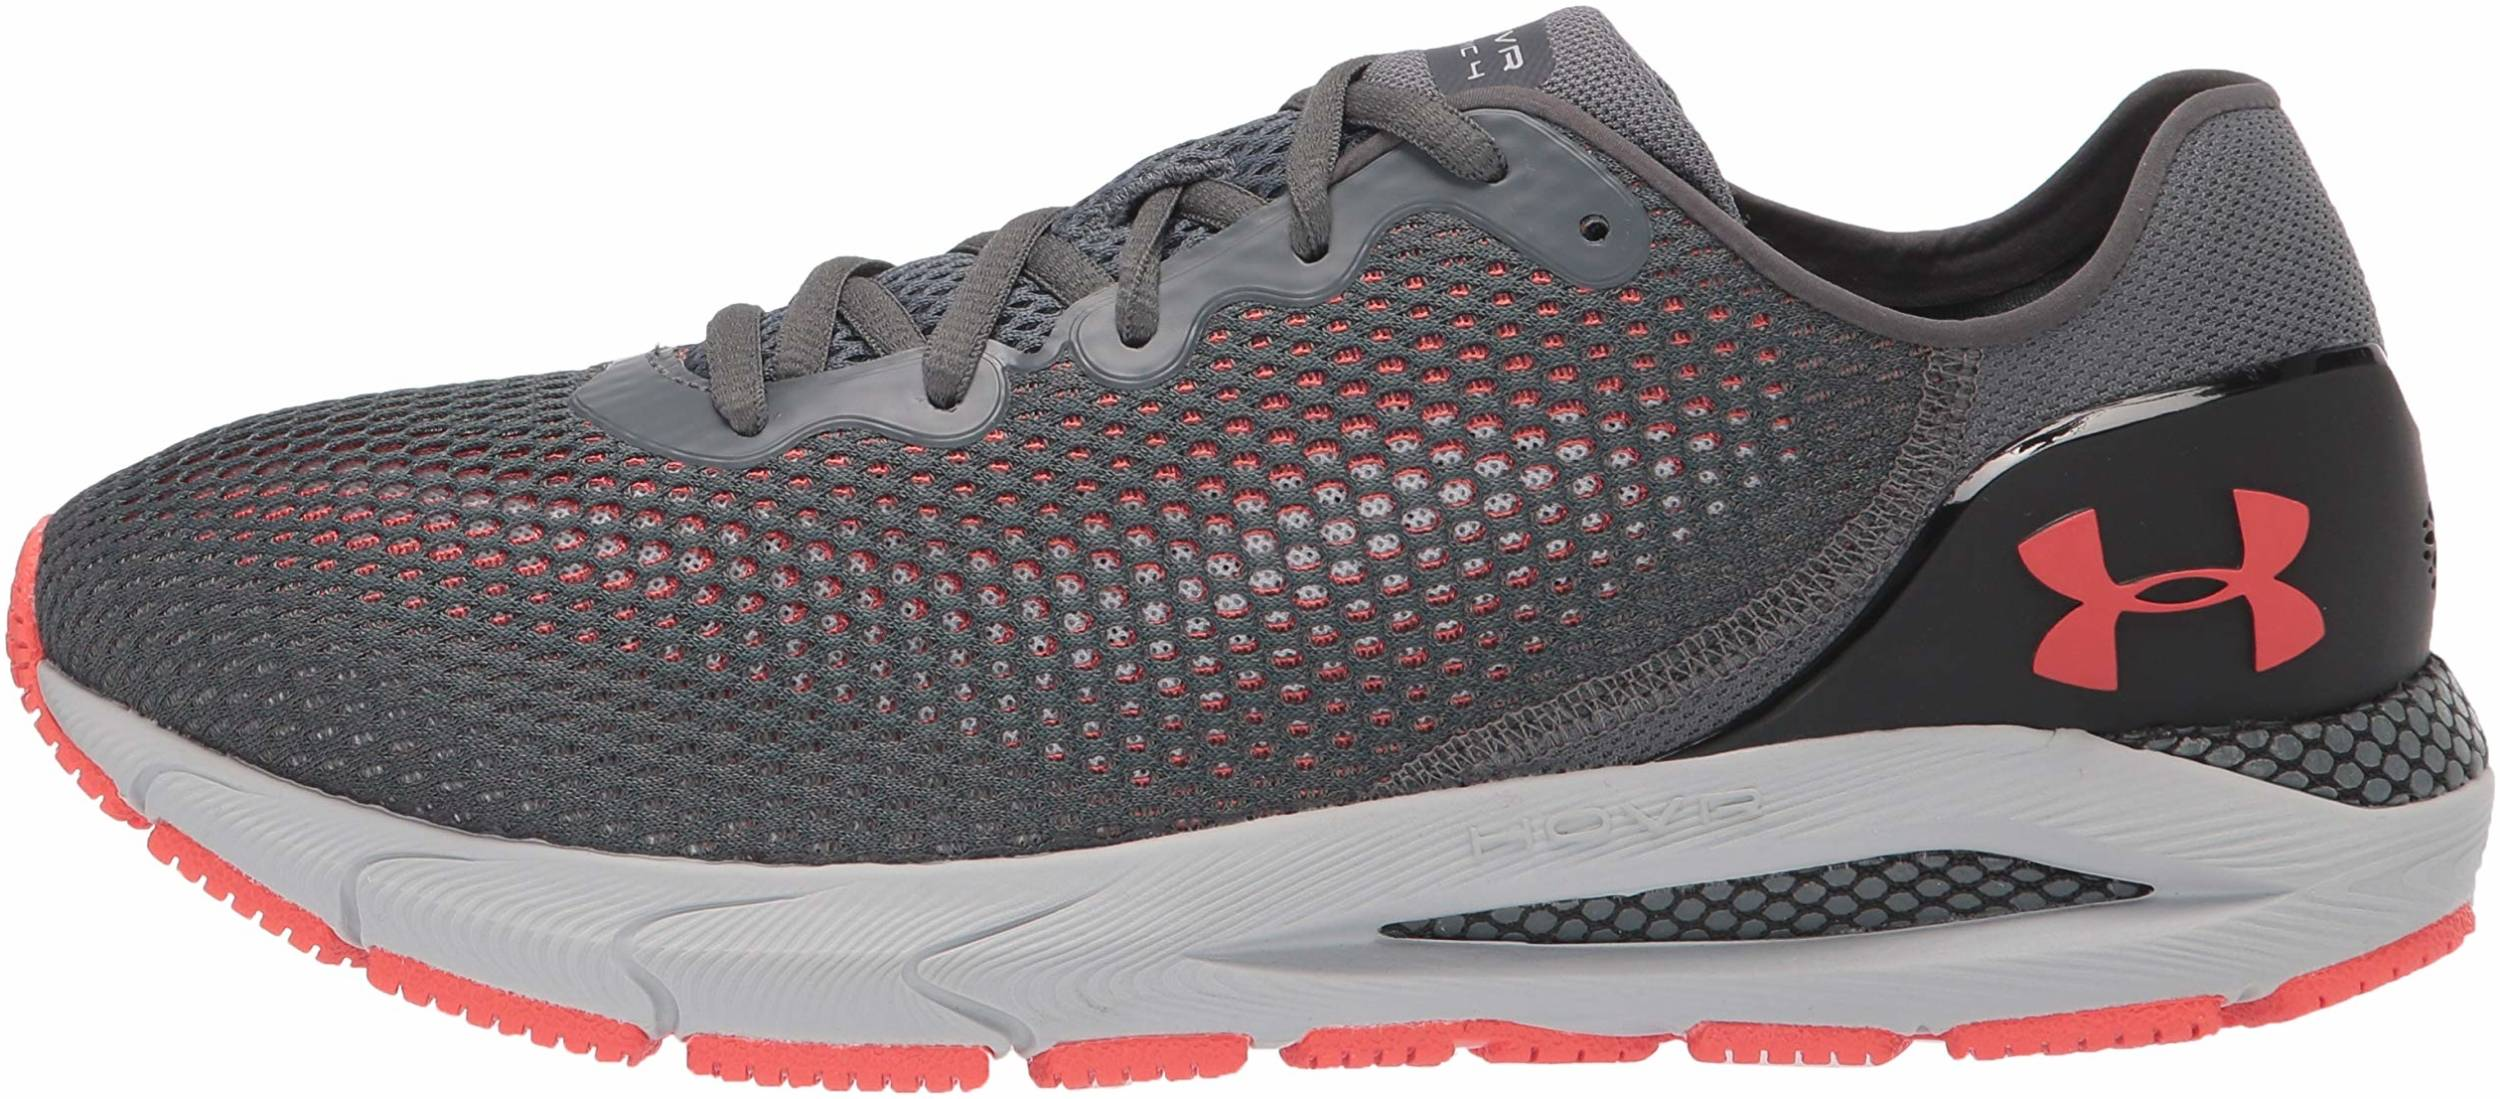 Choice Size New Under Amour Mix Gray//Black Lightweight Boys/' Athletic Shoes